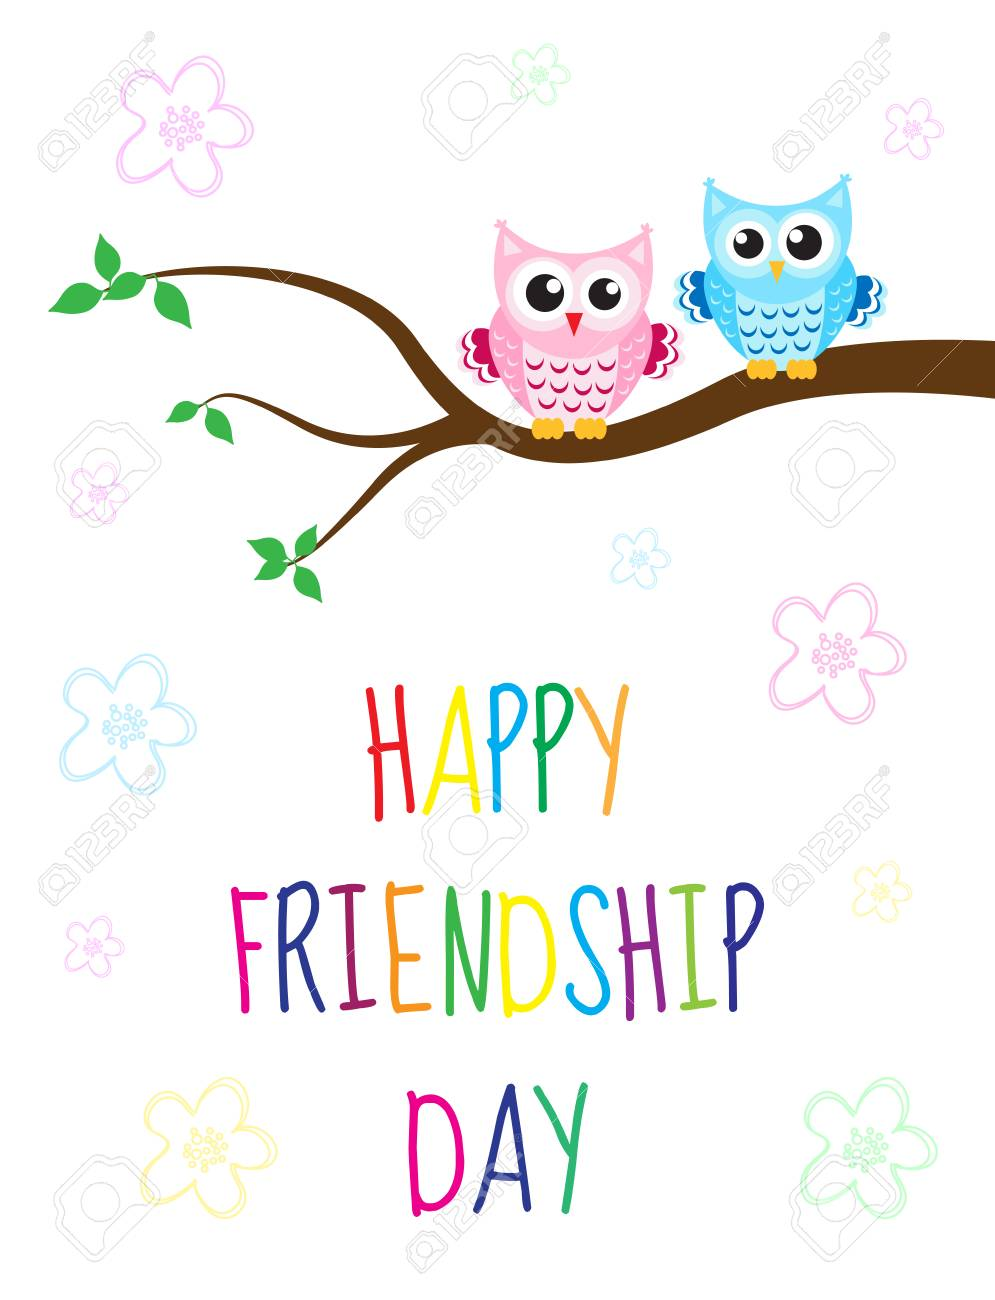 Charming Greeting Card With A Happy Friendship Day. Greeting Card Cute Cartoon Owl  Sitting On A